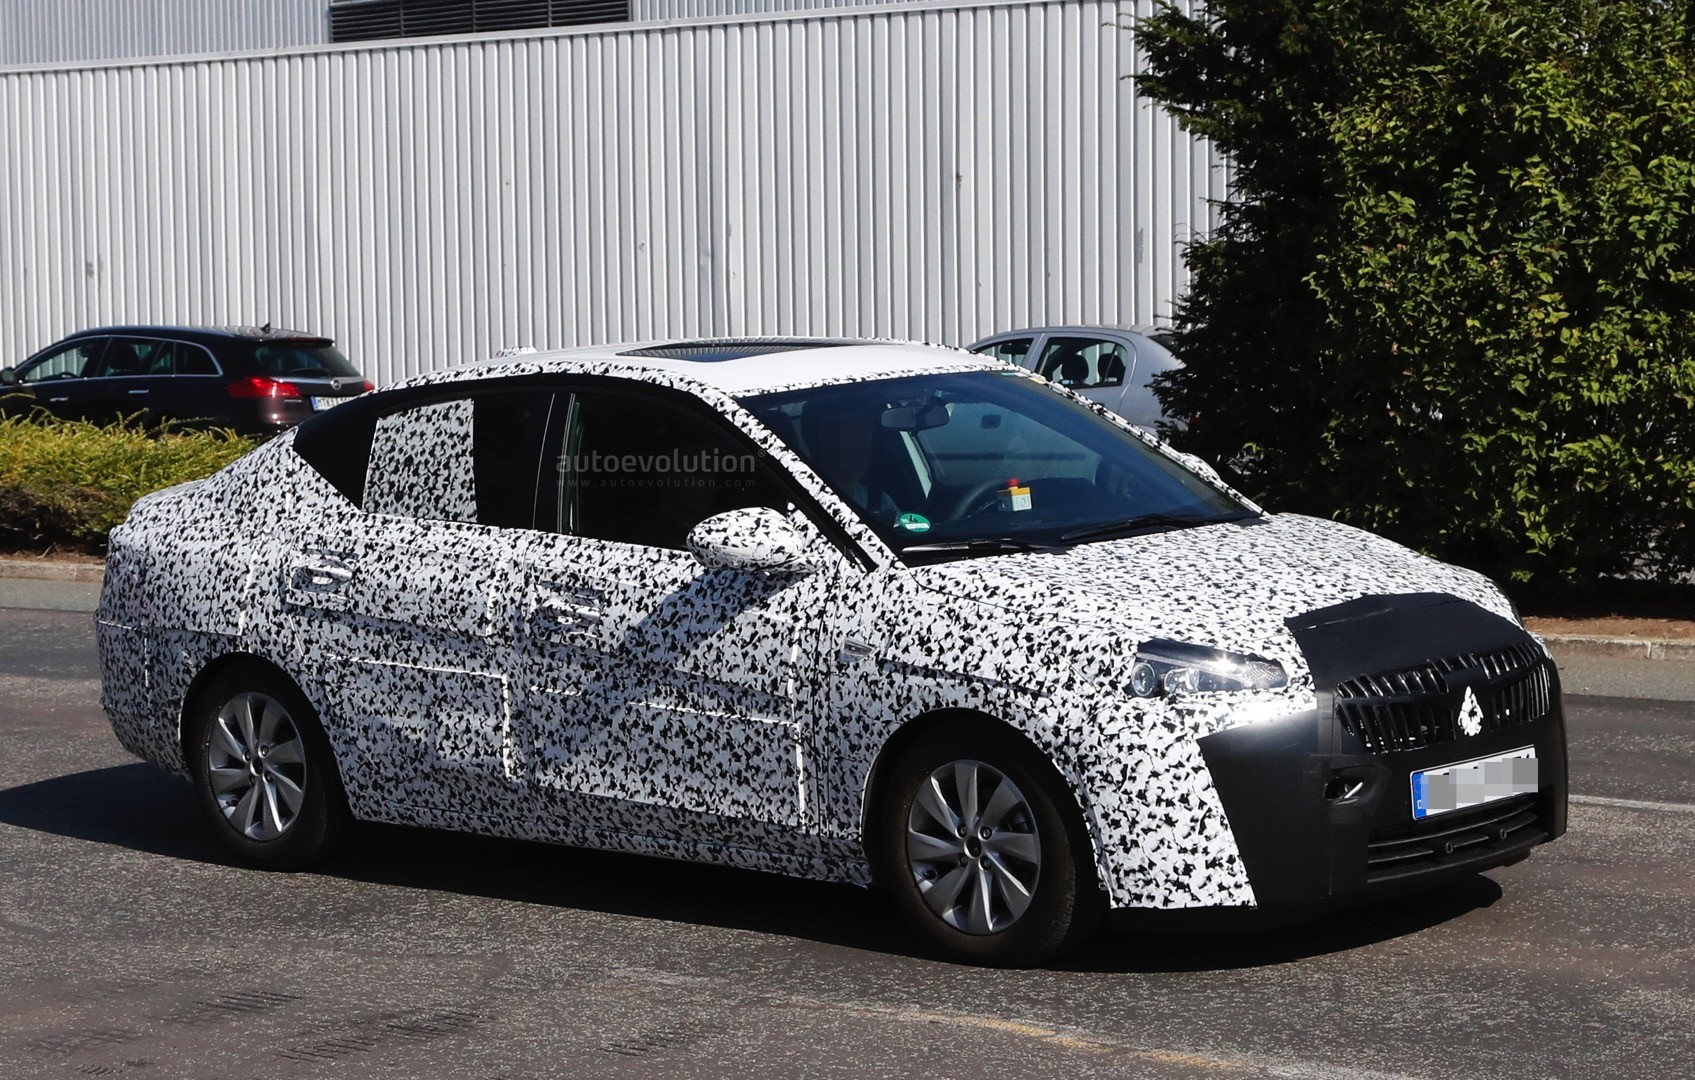 2019- [Opel] Corsa F [P2JO] - Page 3 2018-opel-corsa-f-sedan-spied-to-be-launched-in-china-as-2018-chevrolet-sail_3